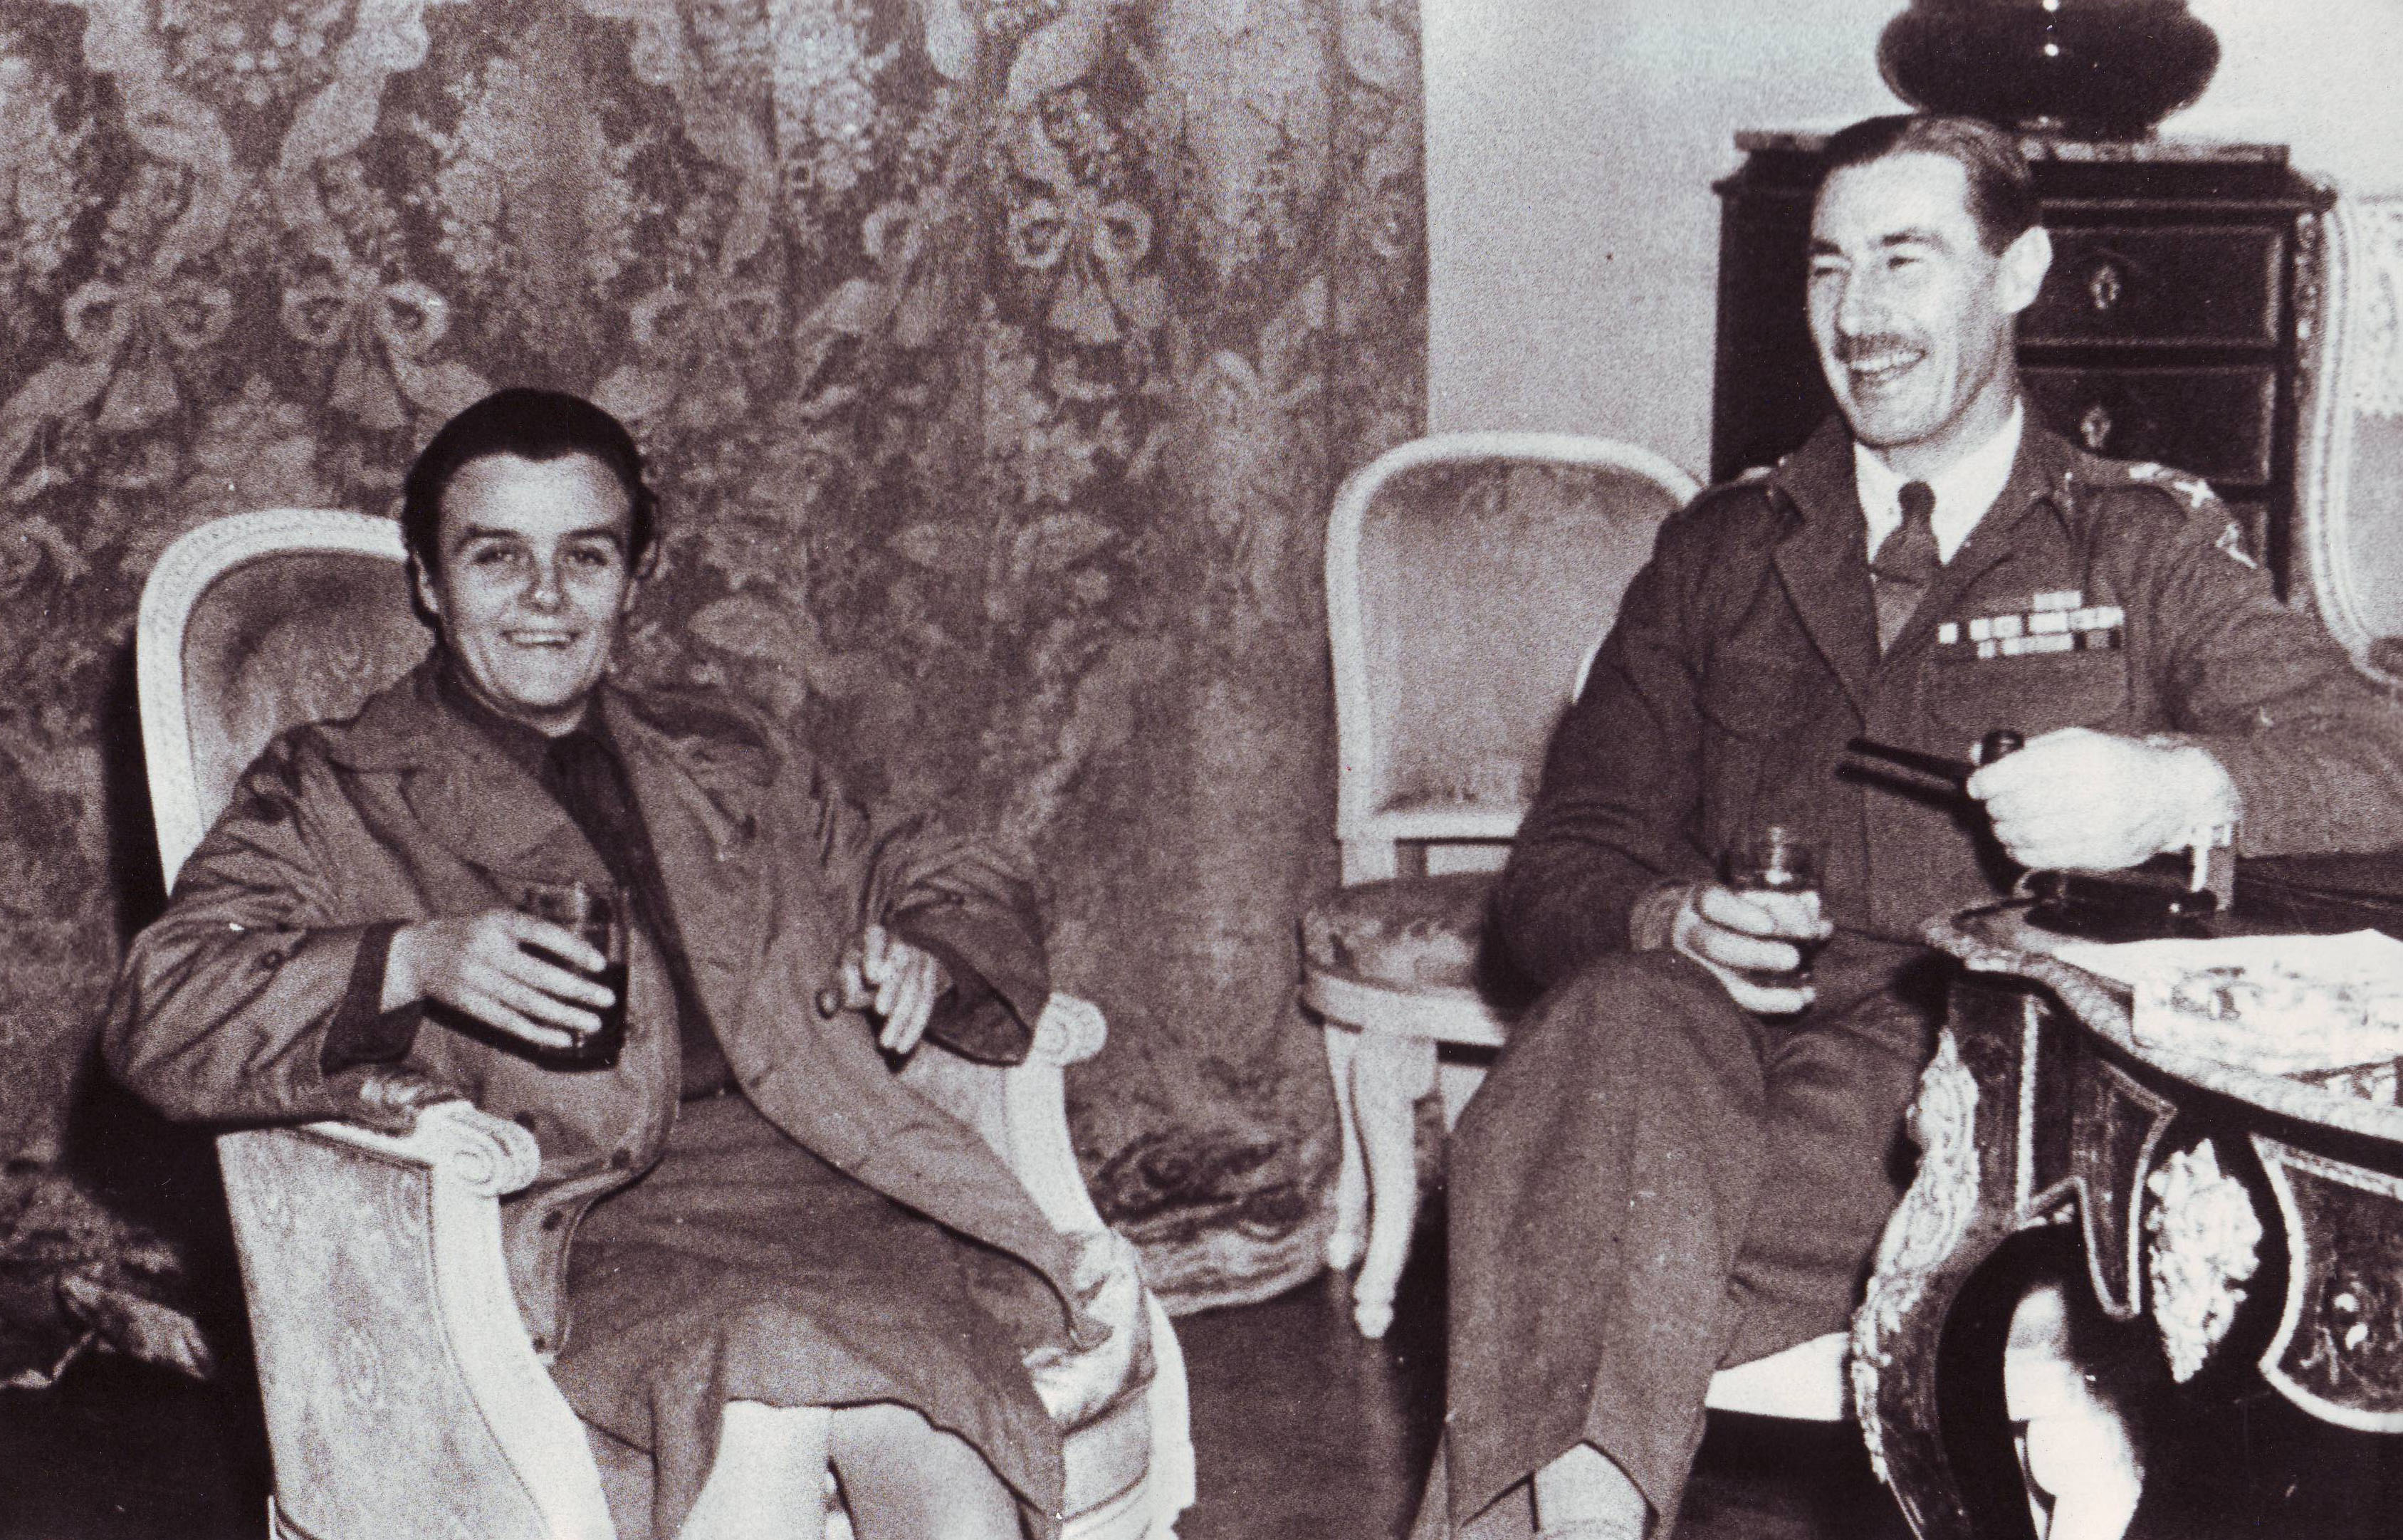 Clare Hollingworth with a military figure lounging in arm chair, likely towards the end of World War II.